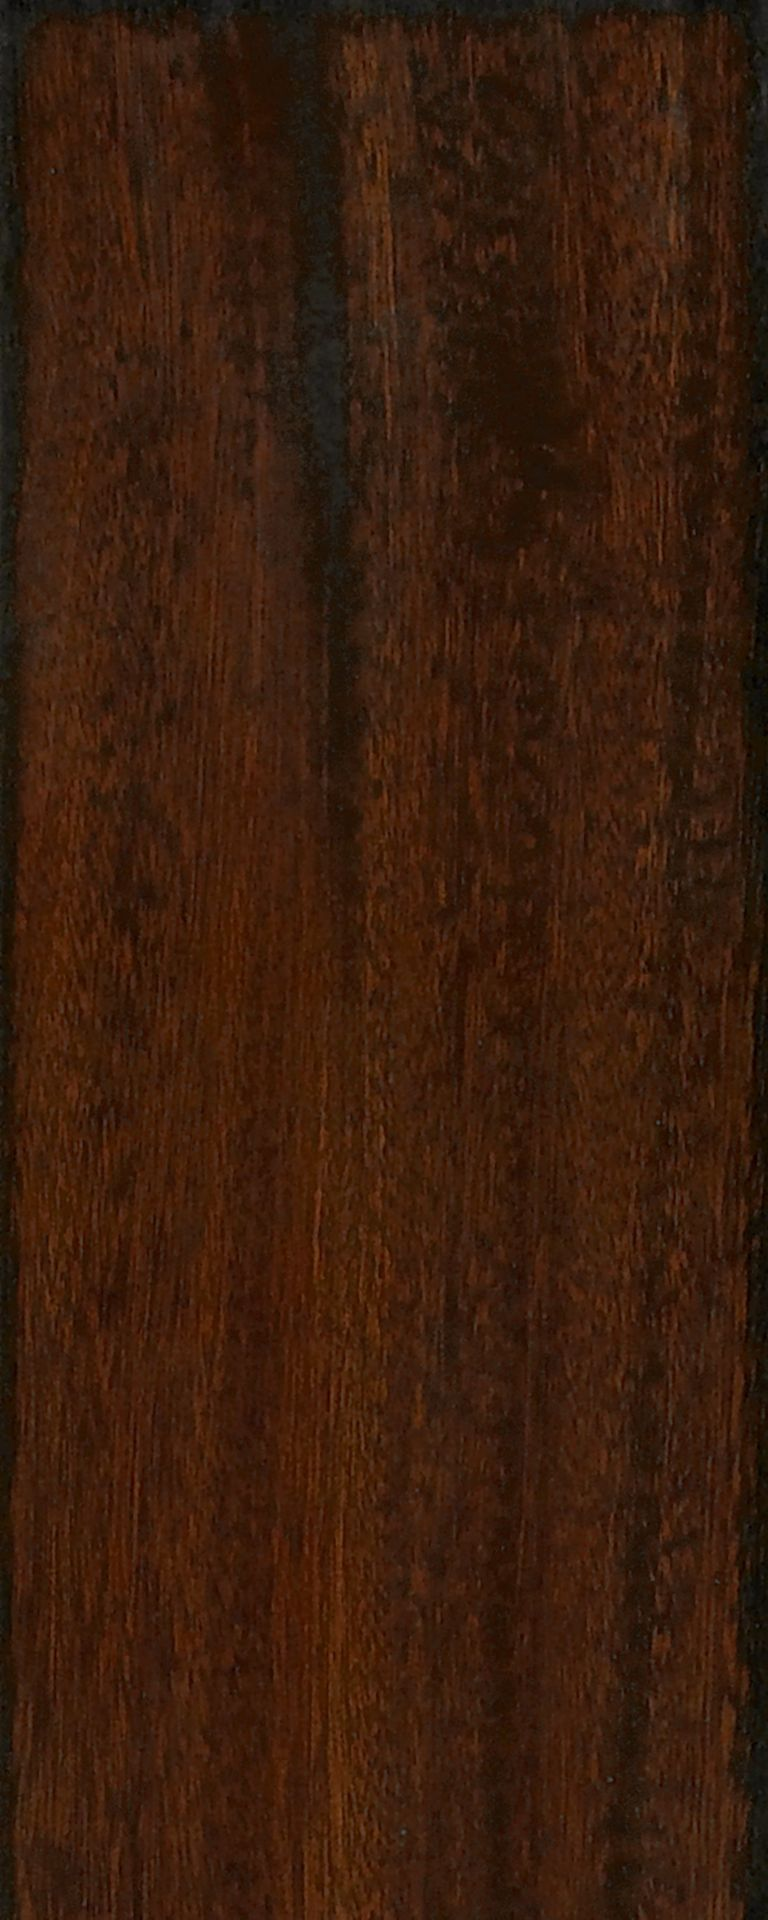 Sapele Long Plank - Wrought Iron Laminate L0223